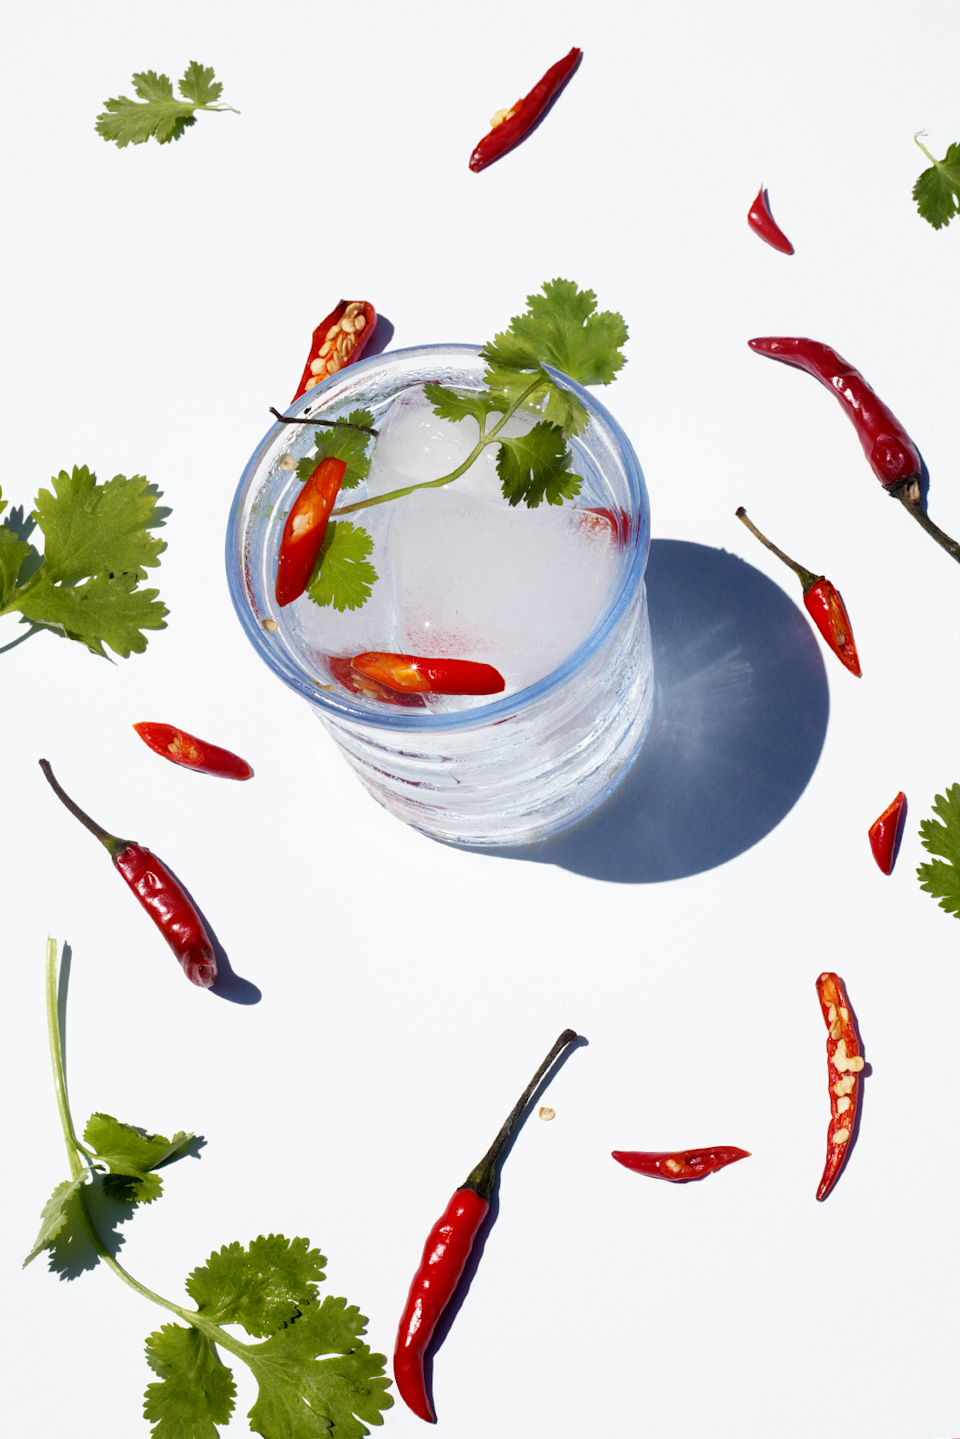 """<strong>Chilli & Coriander</strong><br><br>Coriander is often used in the making of gin, so it's no surprise that herb works well as a garnish to gin and tonic. With the addition of chilli, this makes for a punchy combination with a kick.<br><br><strong>Ingredients (Makes 1)</strong><br>50ml gin<br>1 red chilli, halved lengthways<br>Coriander<br>Tonic water<br>Ice<br><br><strong>Method</strong><br>Fill a glass with ice and add the gin. Top with tonic, and garnish with the halved chilli and a sprig of coriander.<span class=""""copyright"""">Photographed by <strong>Roxana Azar</strong></span>"""